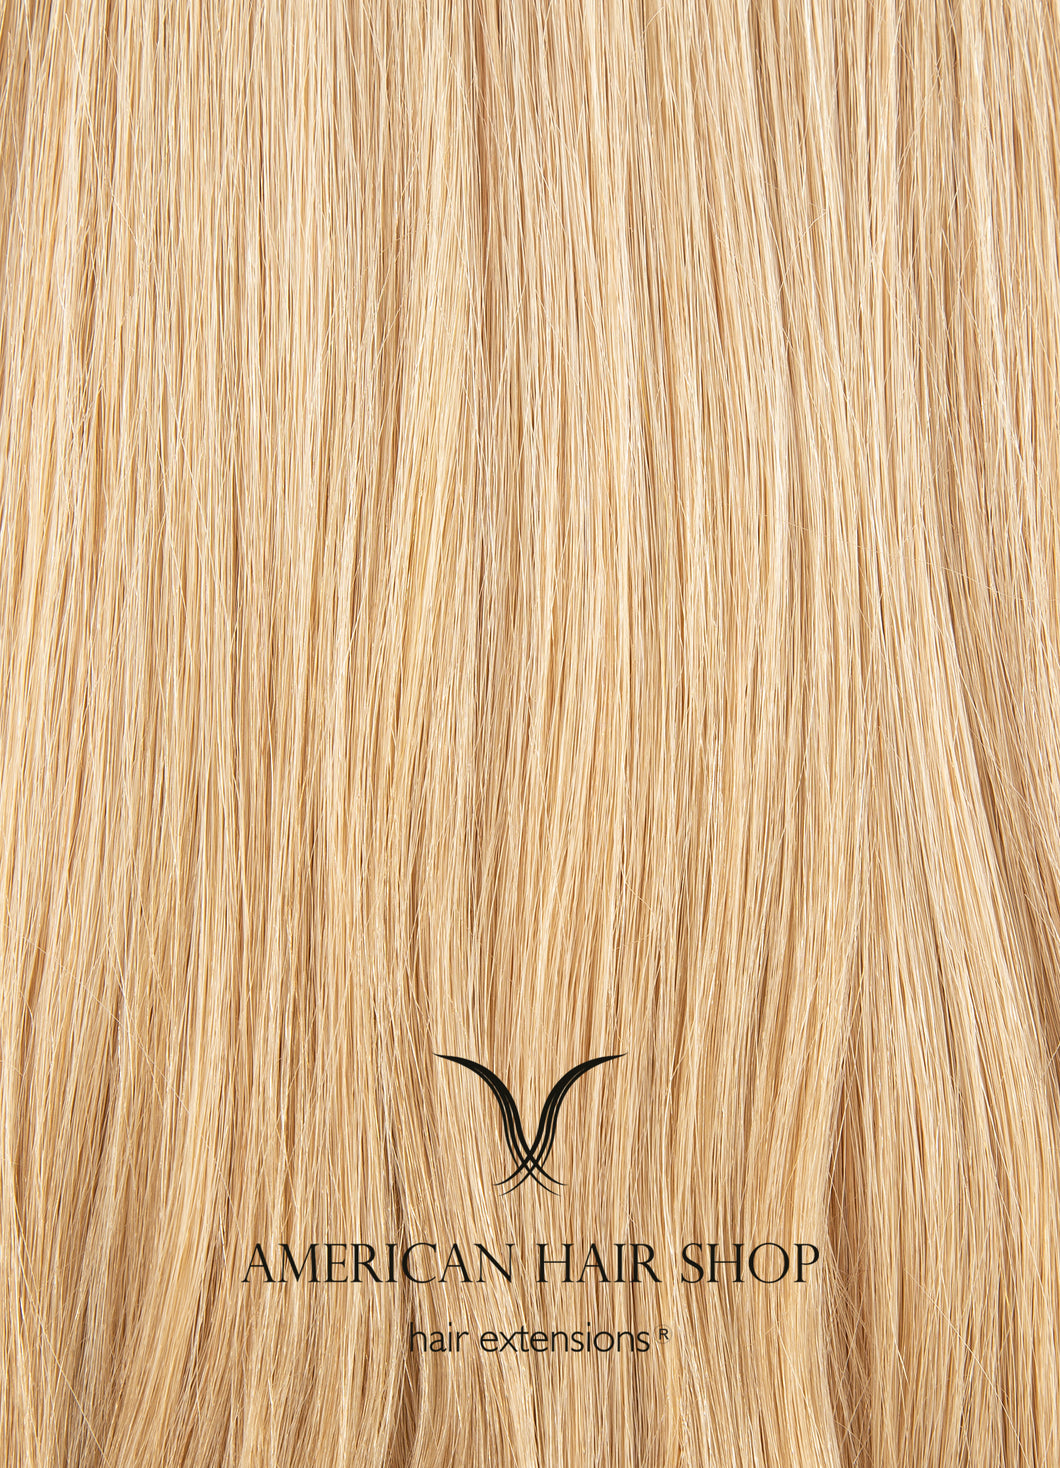 Golden Blonde #22 Tape-in Extension